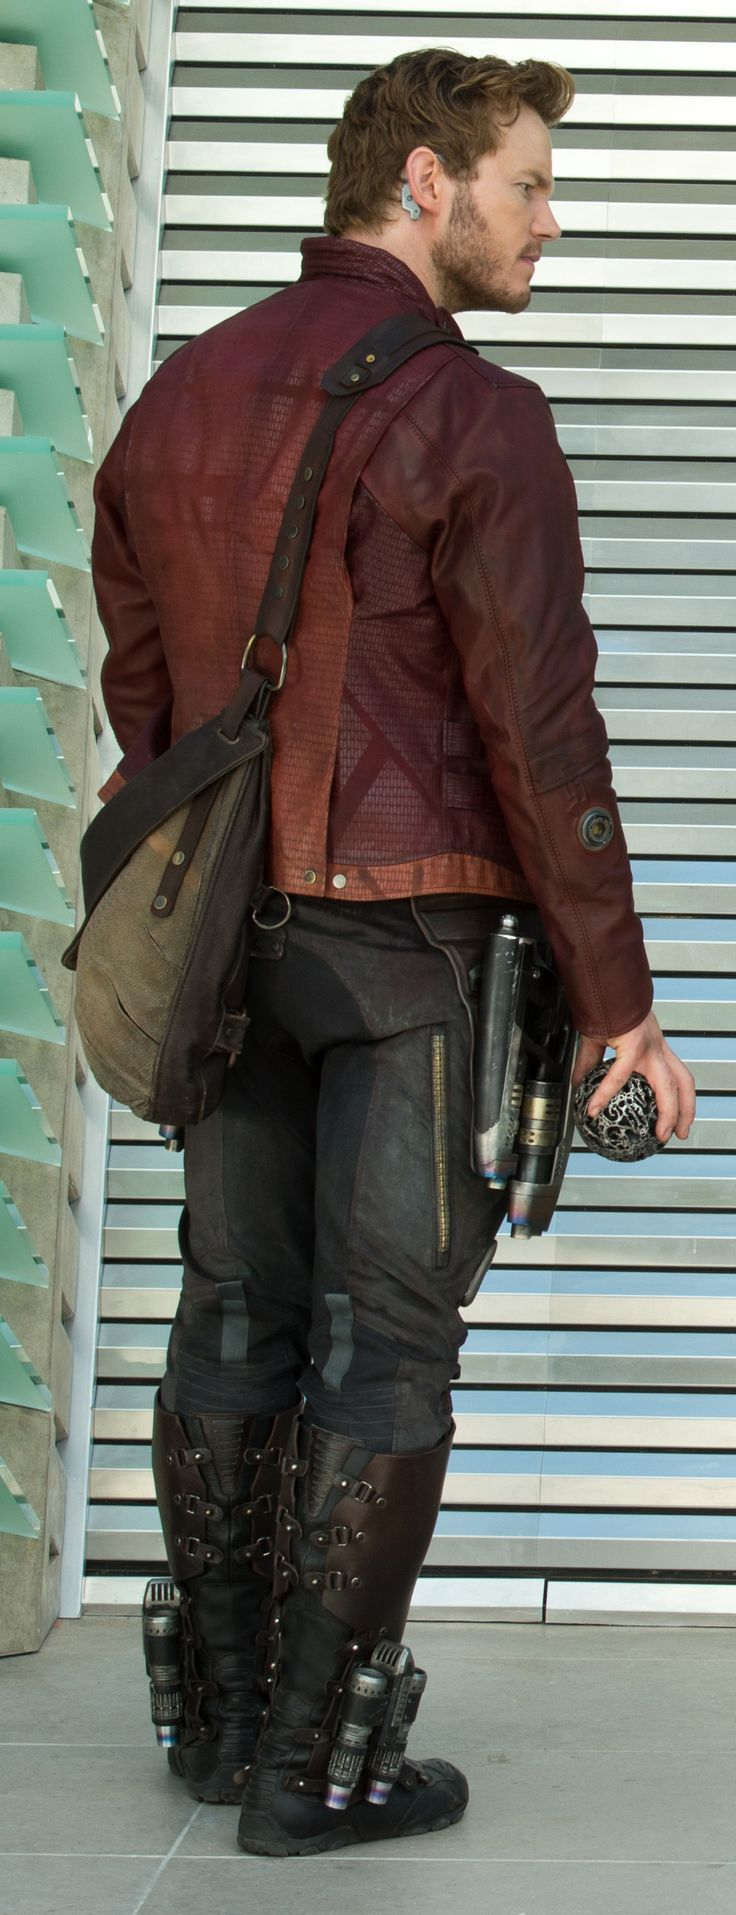 Star-Lord - Closeup of Peter Quill's back